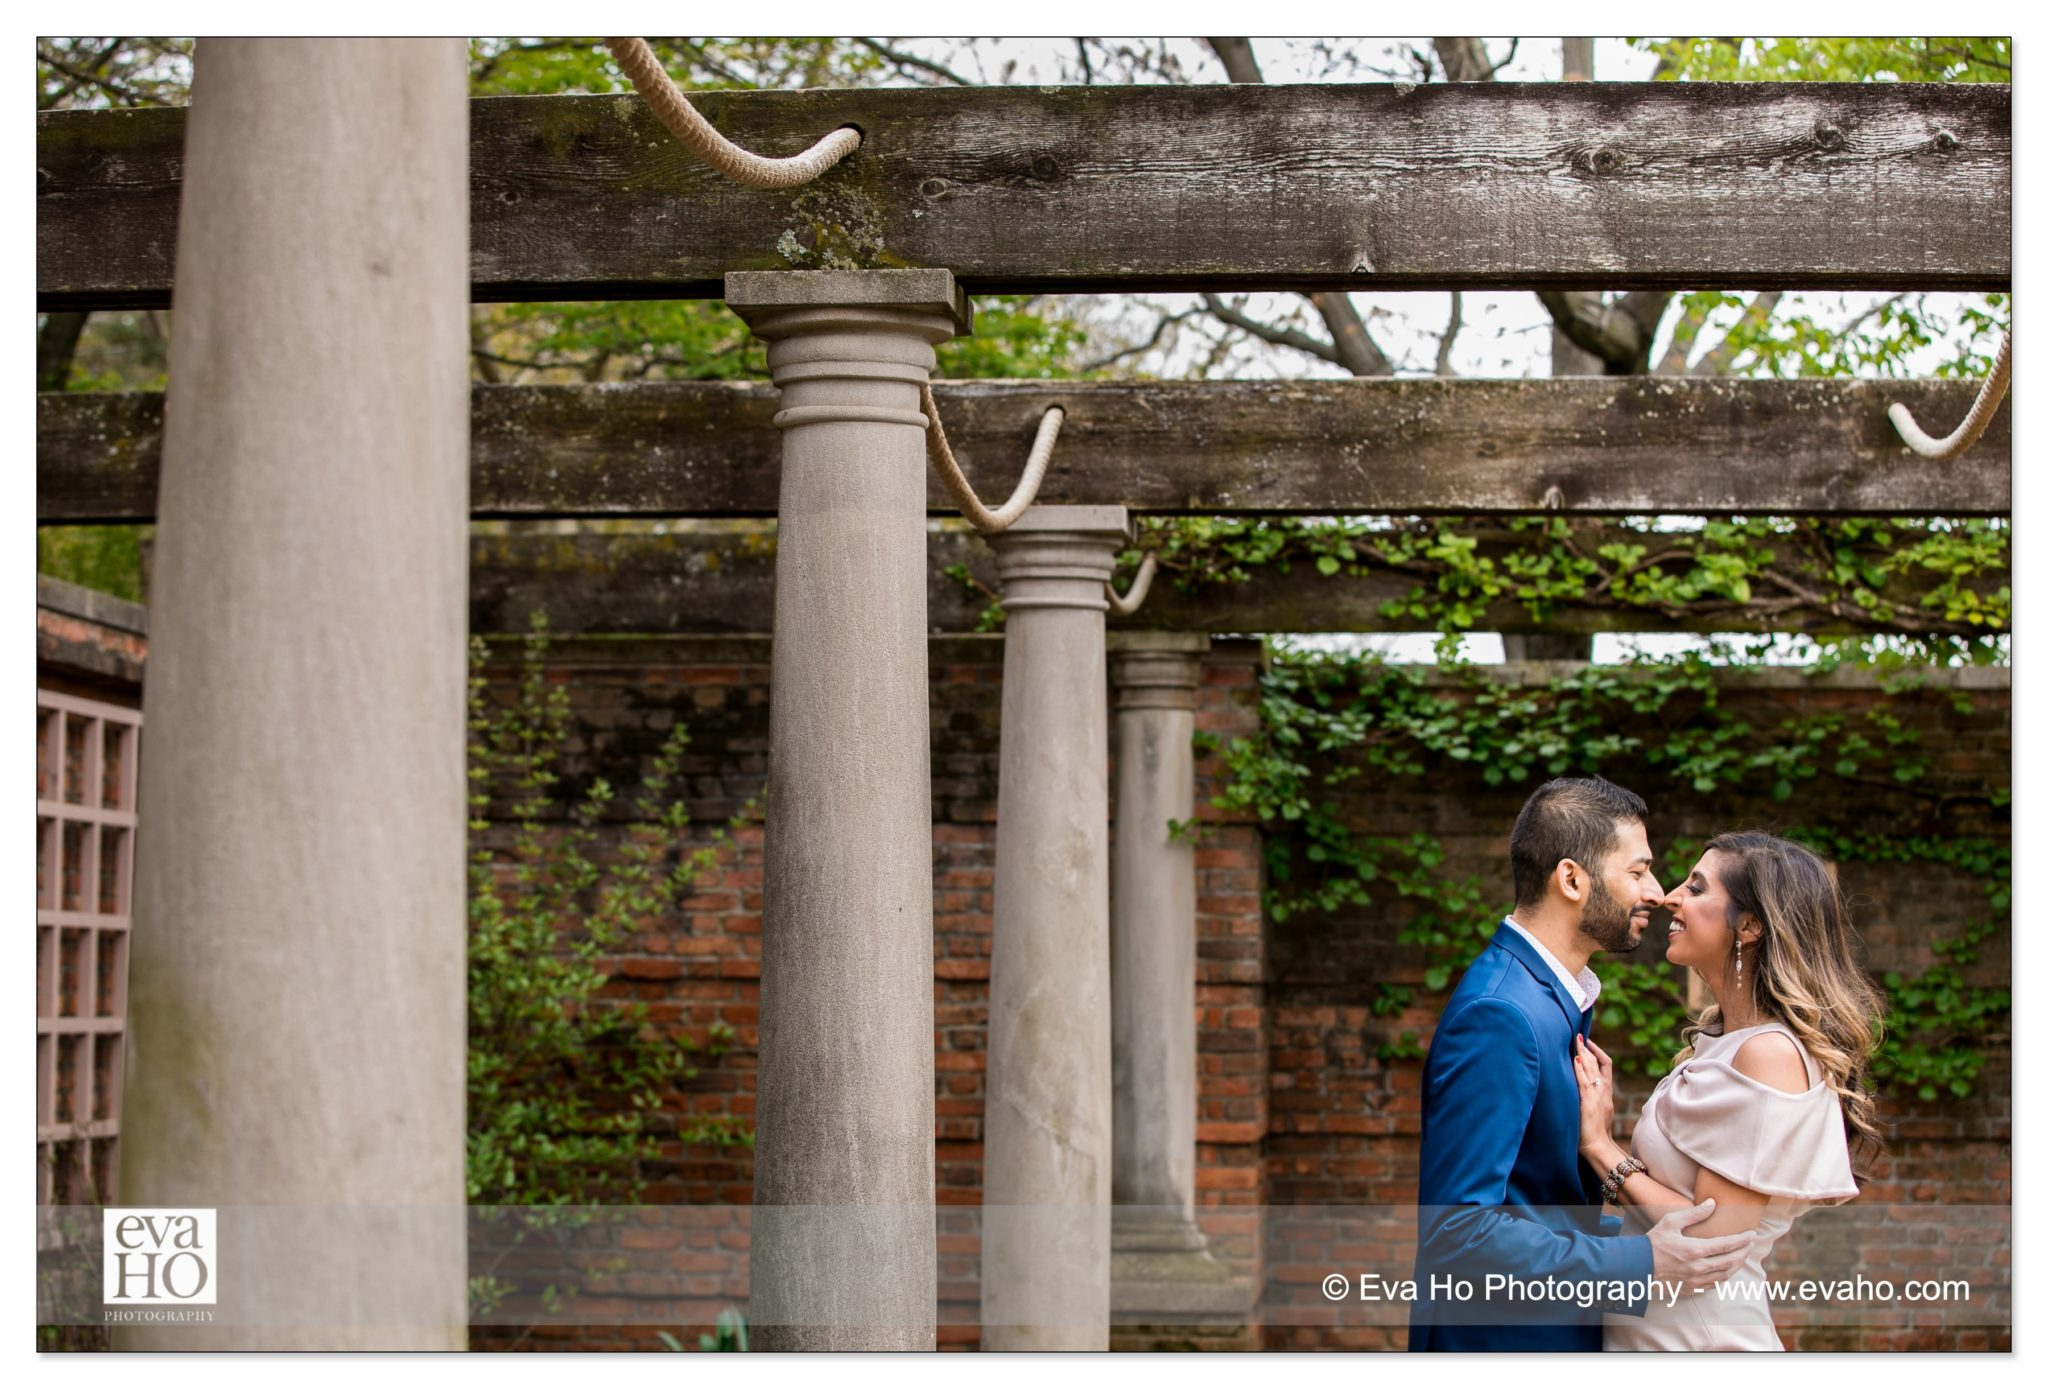 Gorgeous Engagement Photo Session At The Chicago Botanic Gardens